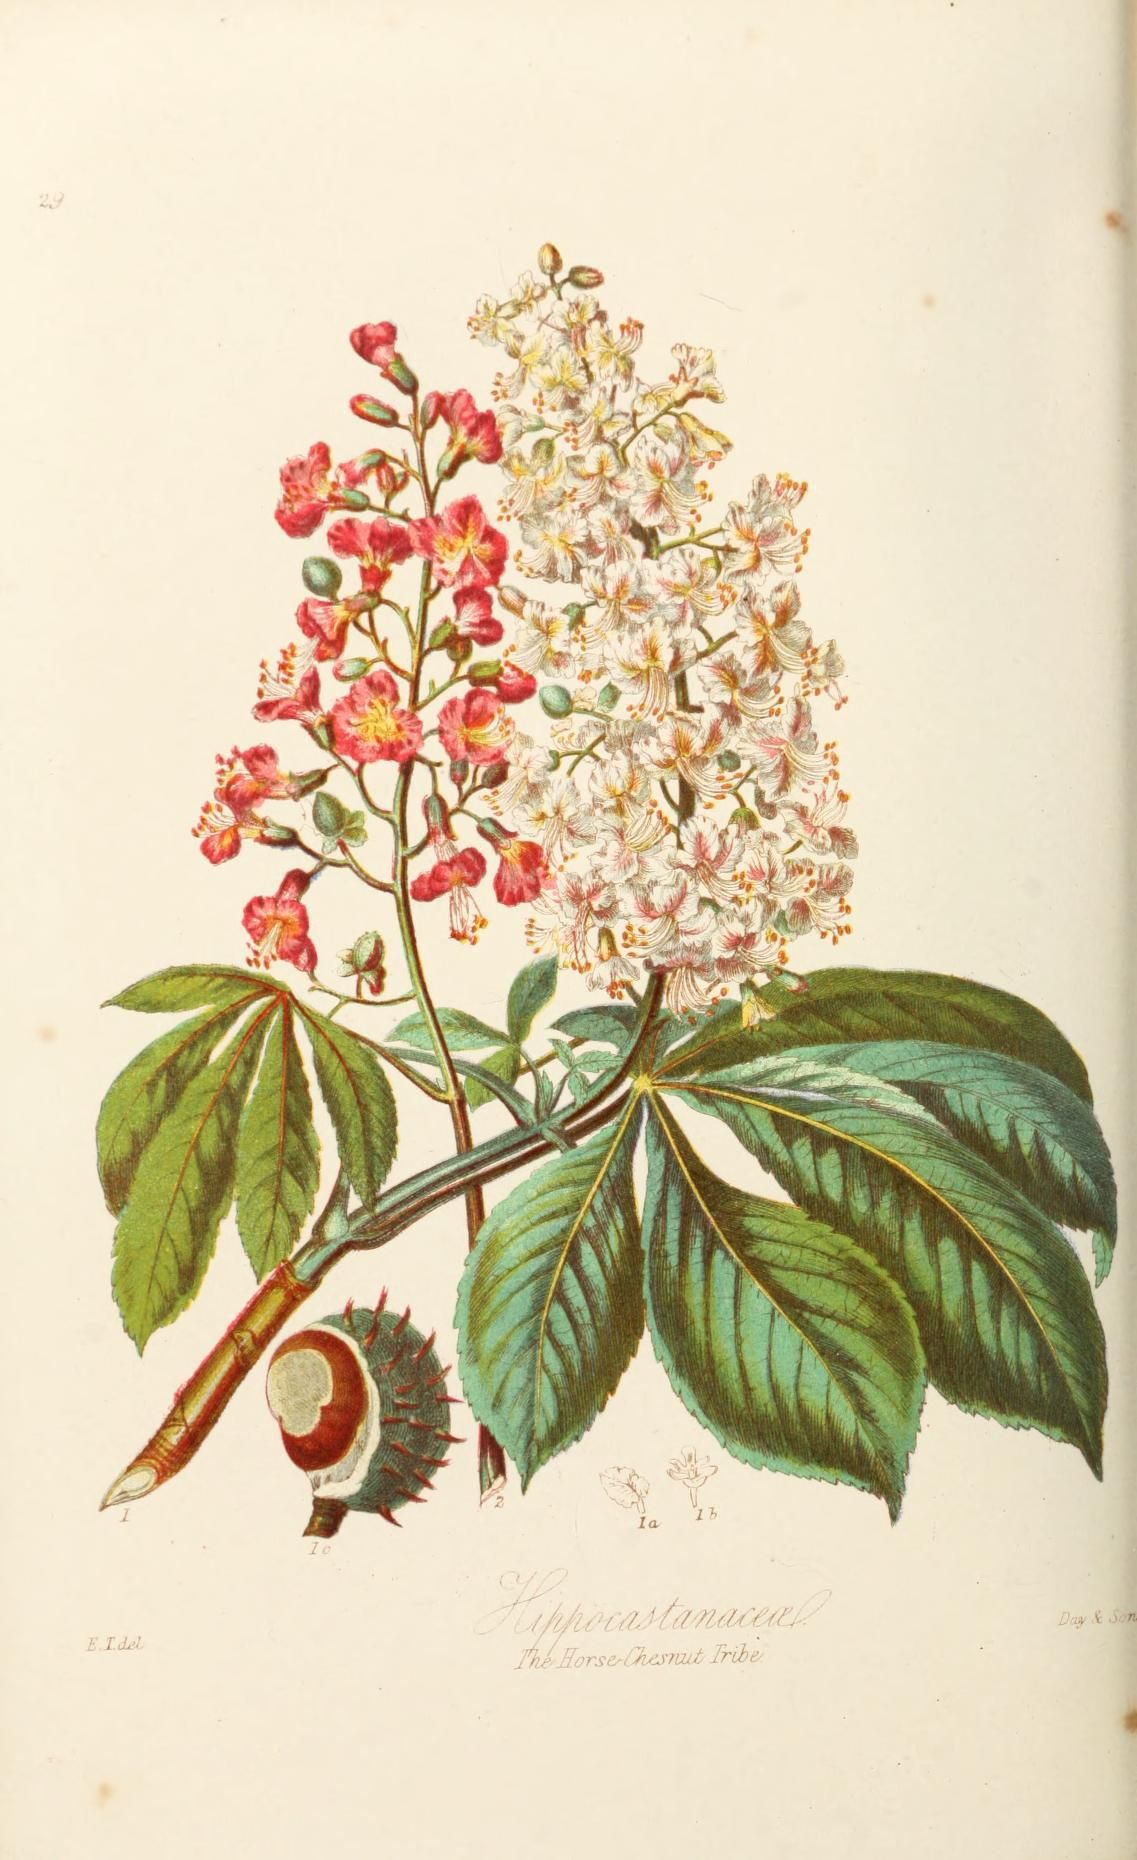 1 - Illustrations of the natural orders of plants with groups and descriptions. - Biodiversity Heritage Library